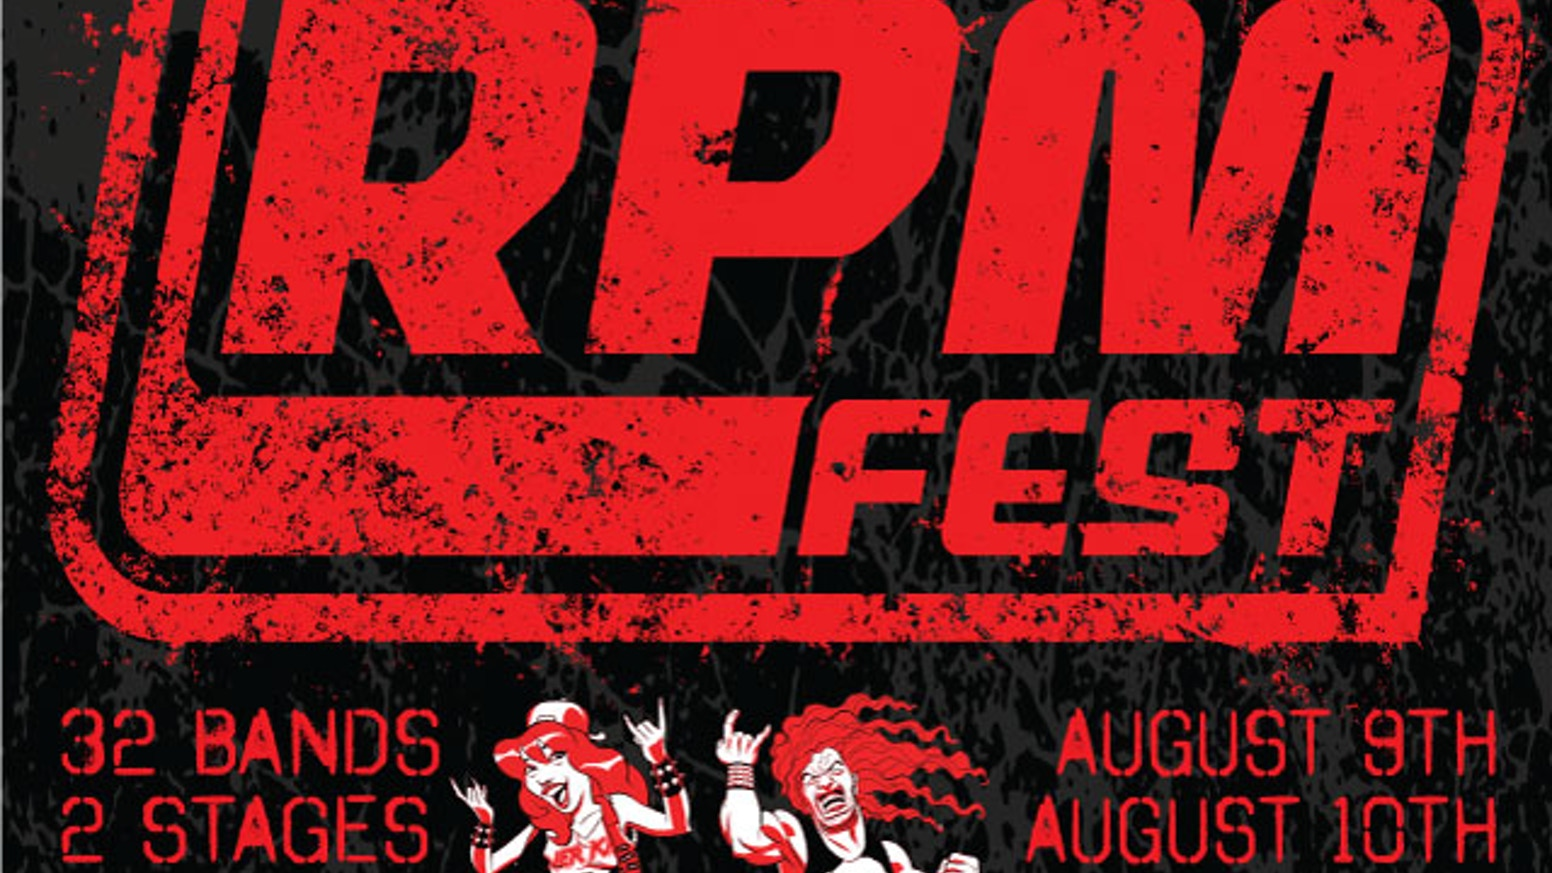 RPM Fest 2014 - a Heavy Music Festival in Western Mass by RPM Fest ...